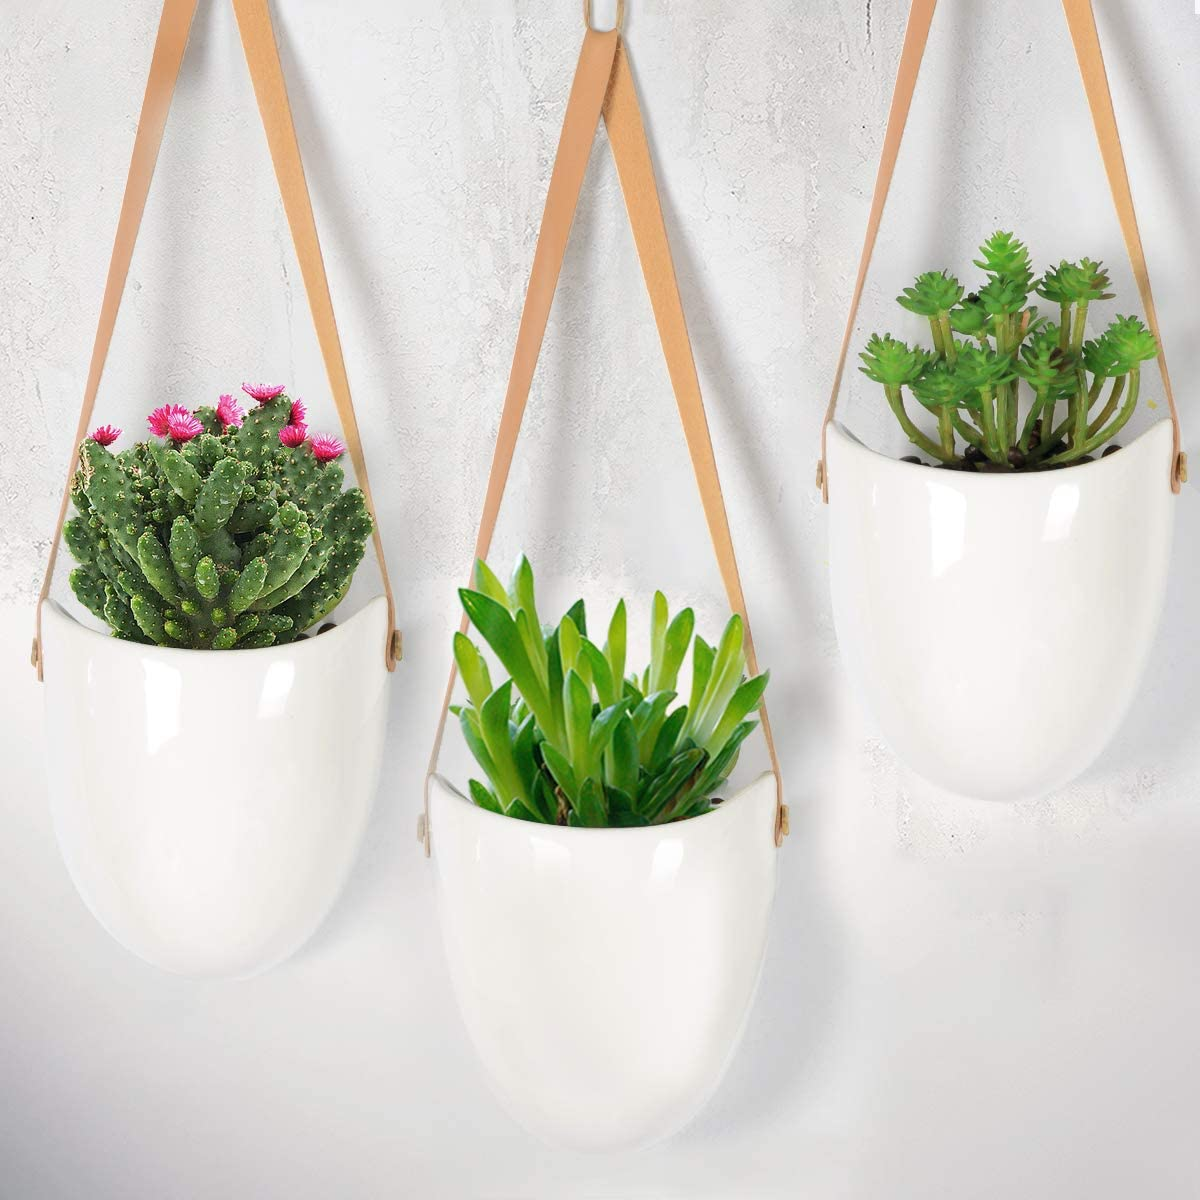 Afaris Ceramic Hanging Planter, Succulent Air Plant Flower-Pot Wall Decor Hanging Planters with Leather Strapes White Ropes No Drainage Hole, Set of 3